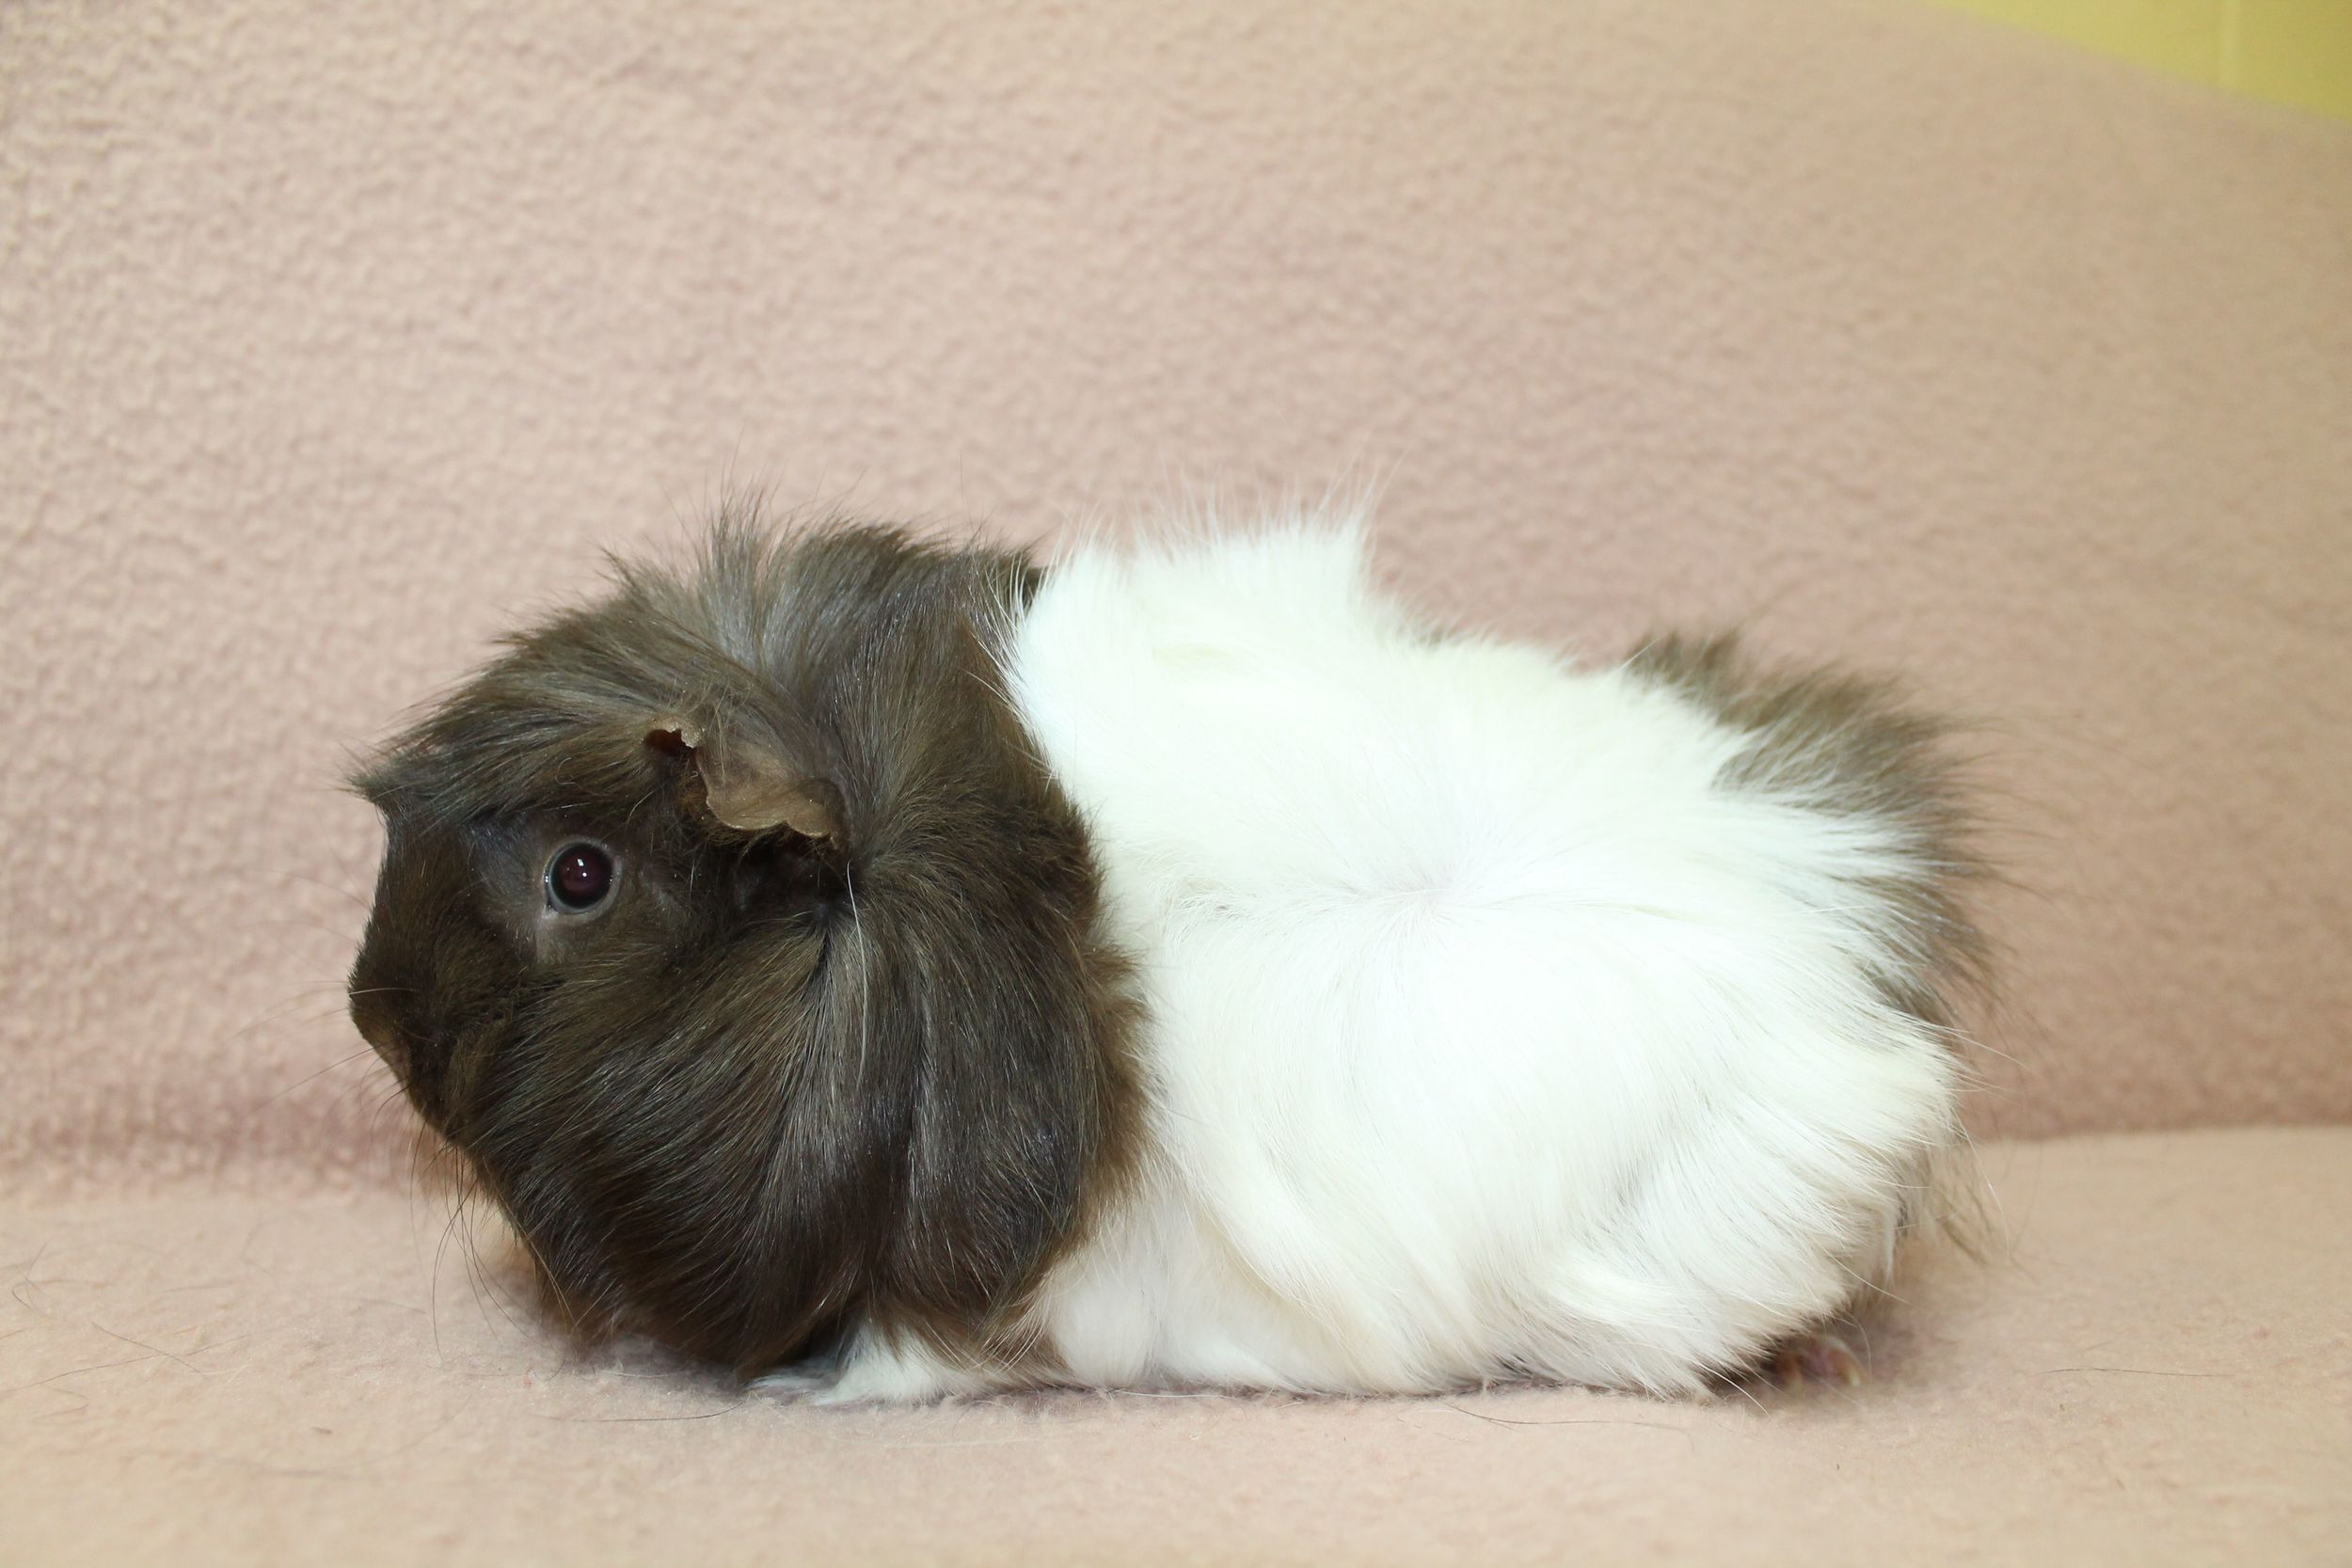 Chelsea is a very sweet little thing. If you are looking for a Guinea Pig to hang out with, she is the one for you. She really enjoys lounging in the laps of her human friends.